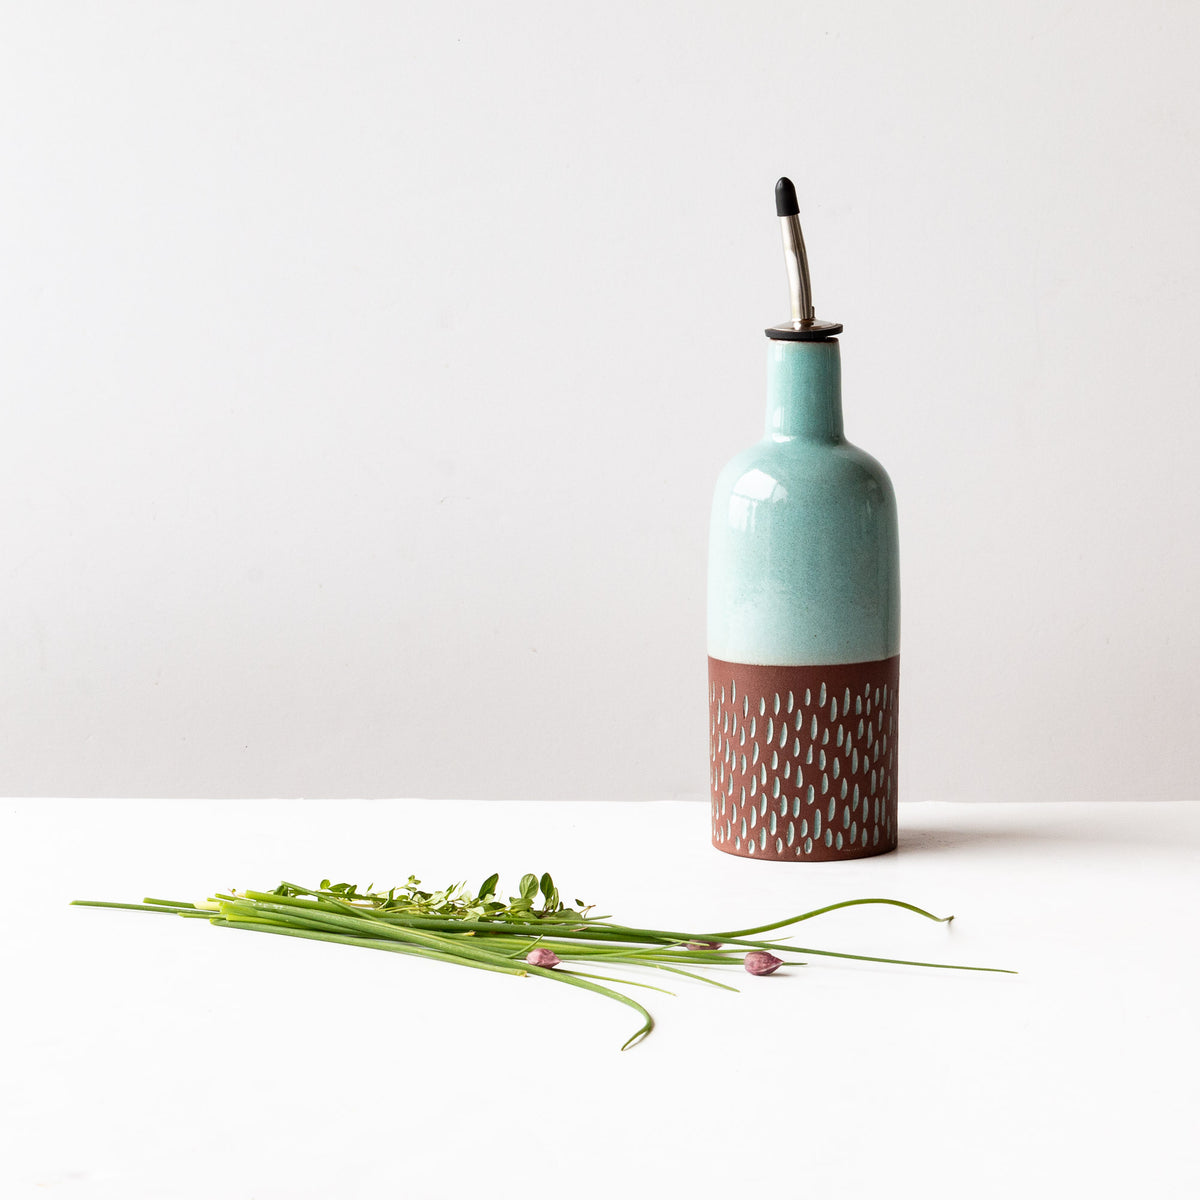 Drop Pattern Oil or Vinegar Bottle - Handmade in Dark Red Clay Pottery - Sold by Chic & Basta